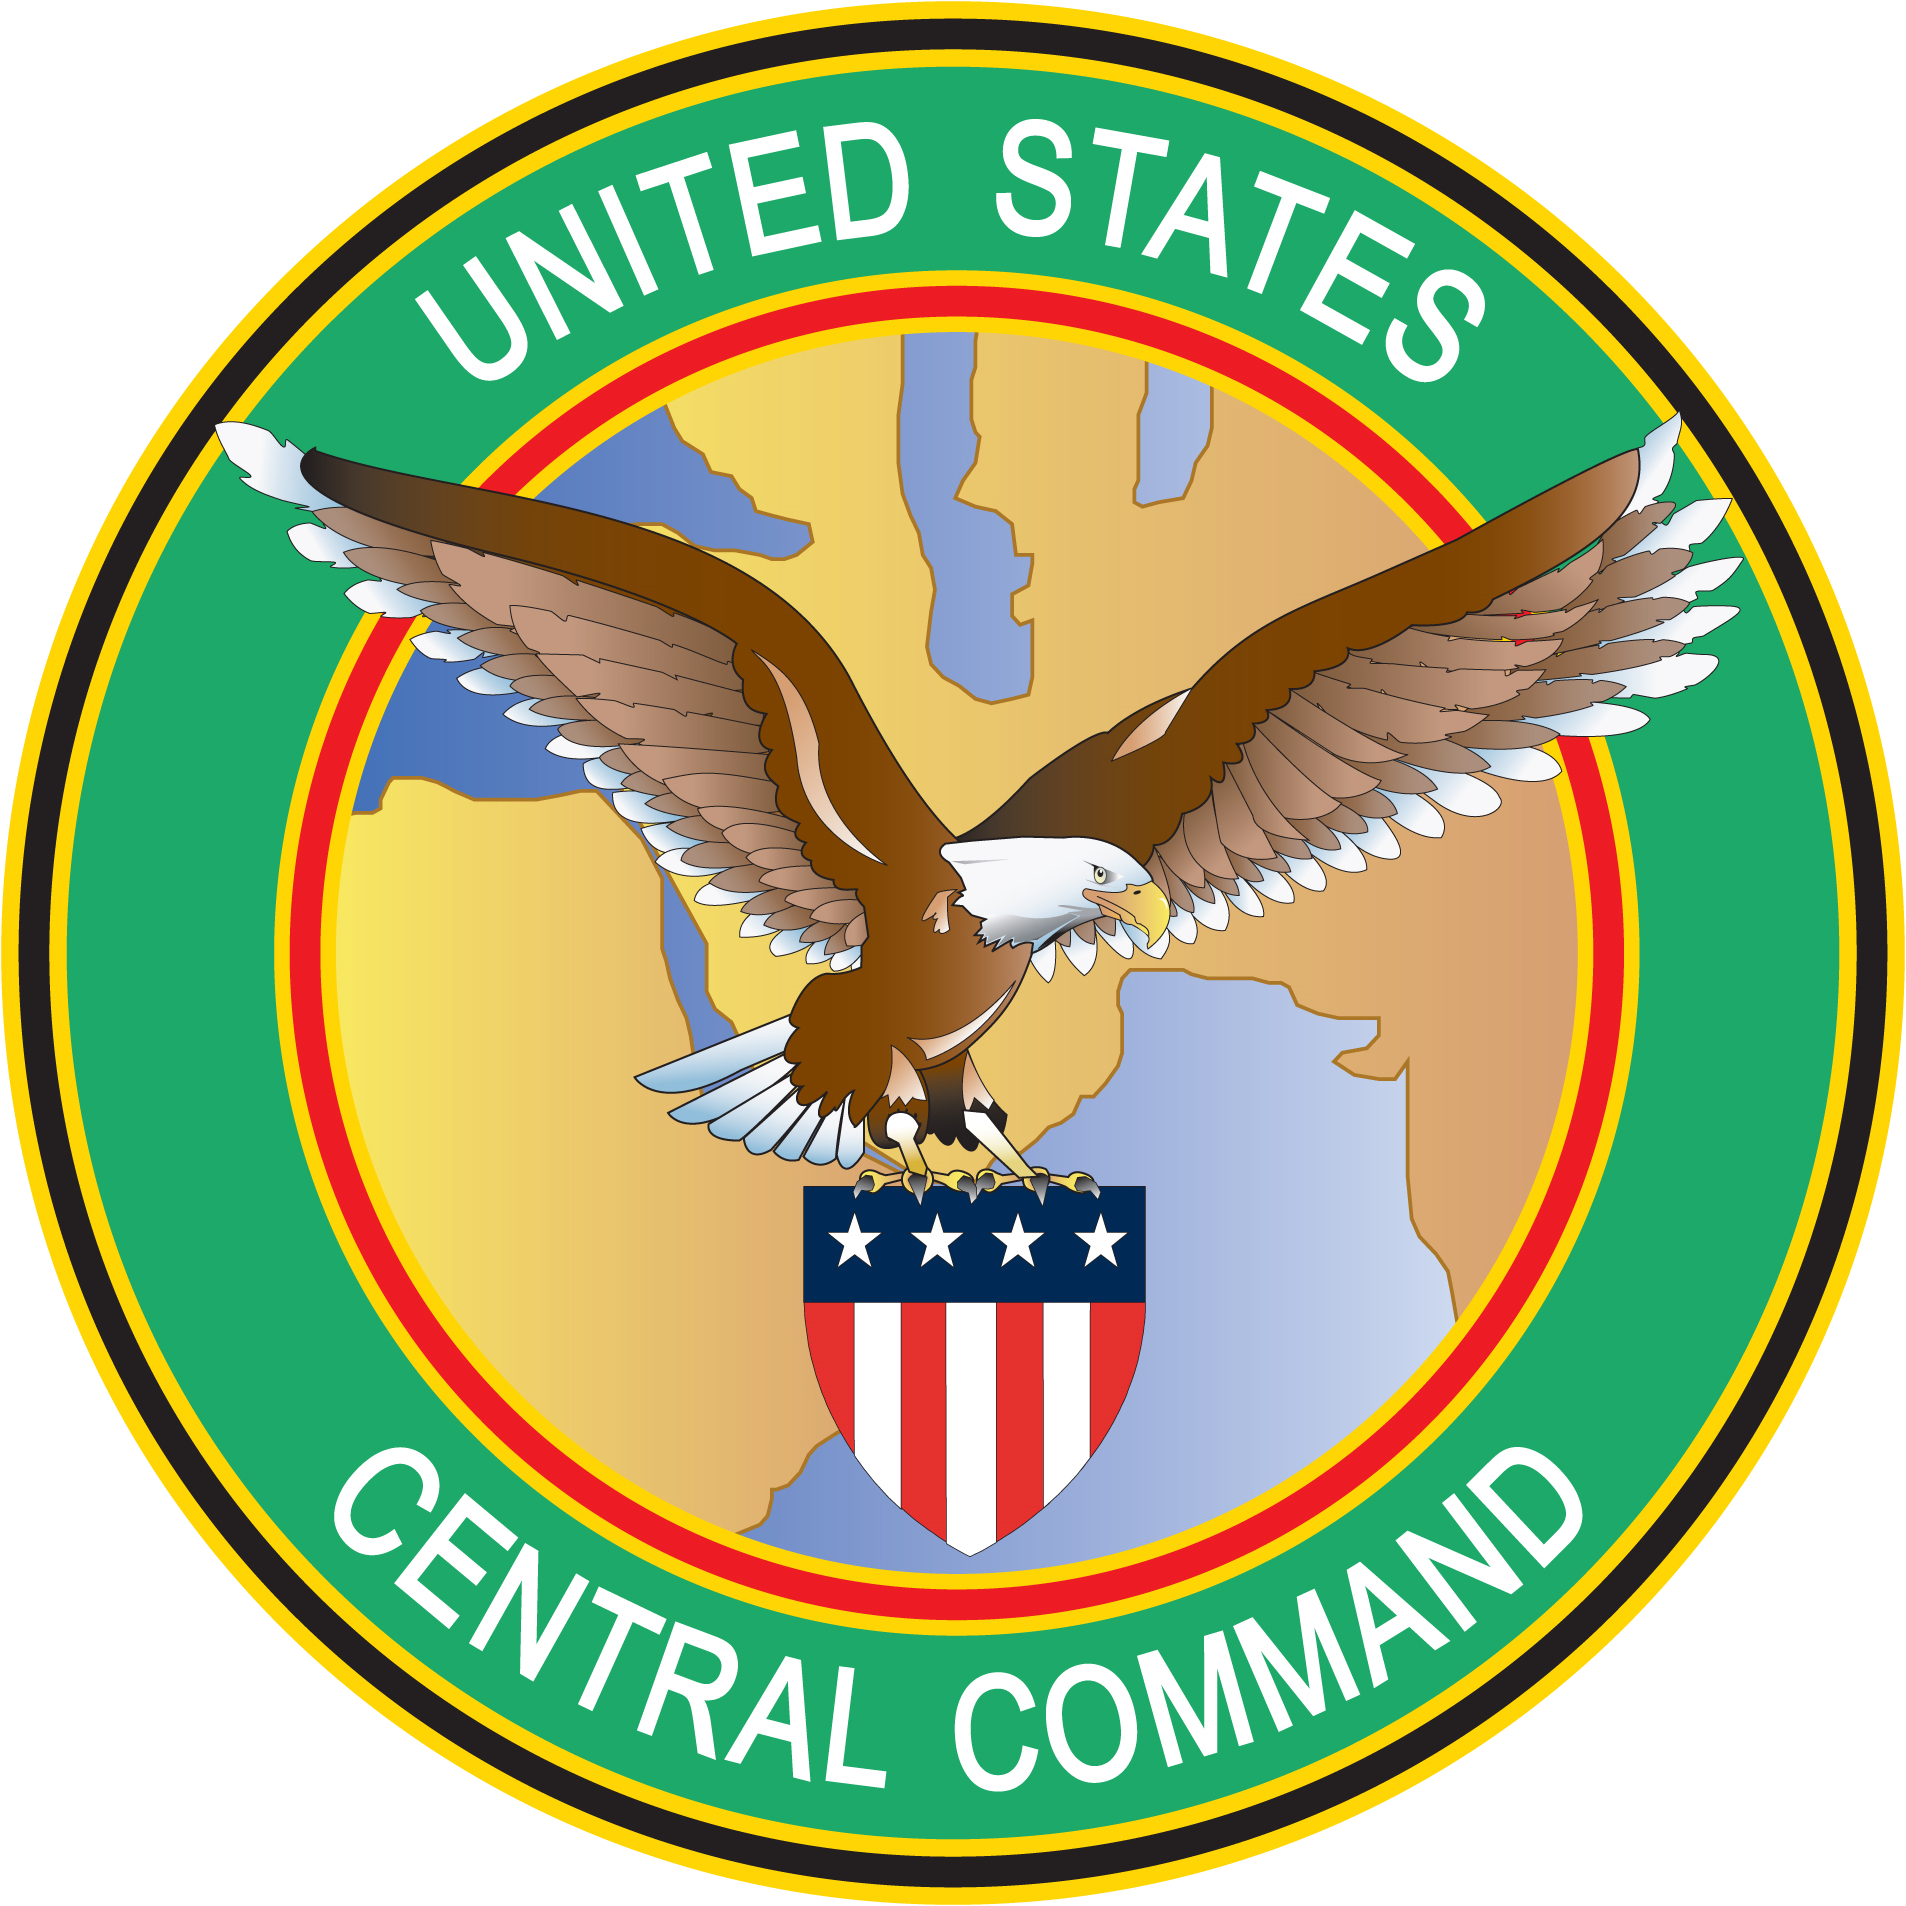 School library clipart svg freeuse download File:Seal of the United States Central Command.png - Wikimedia Commons svg freeuse download